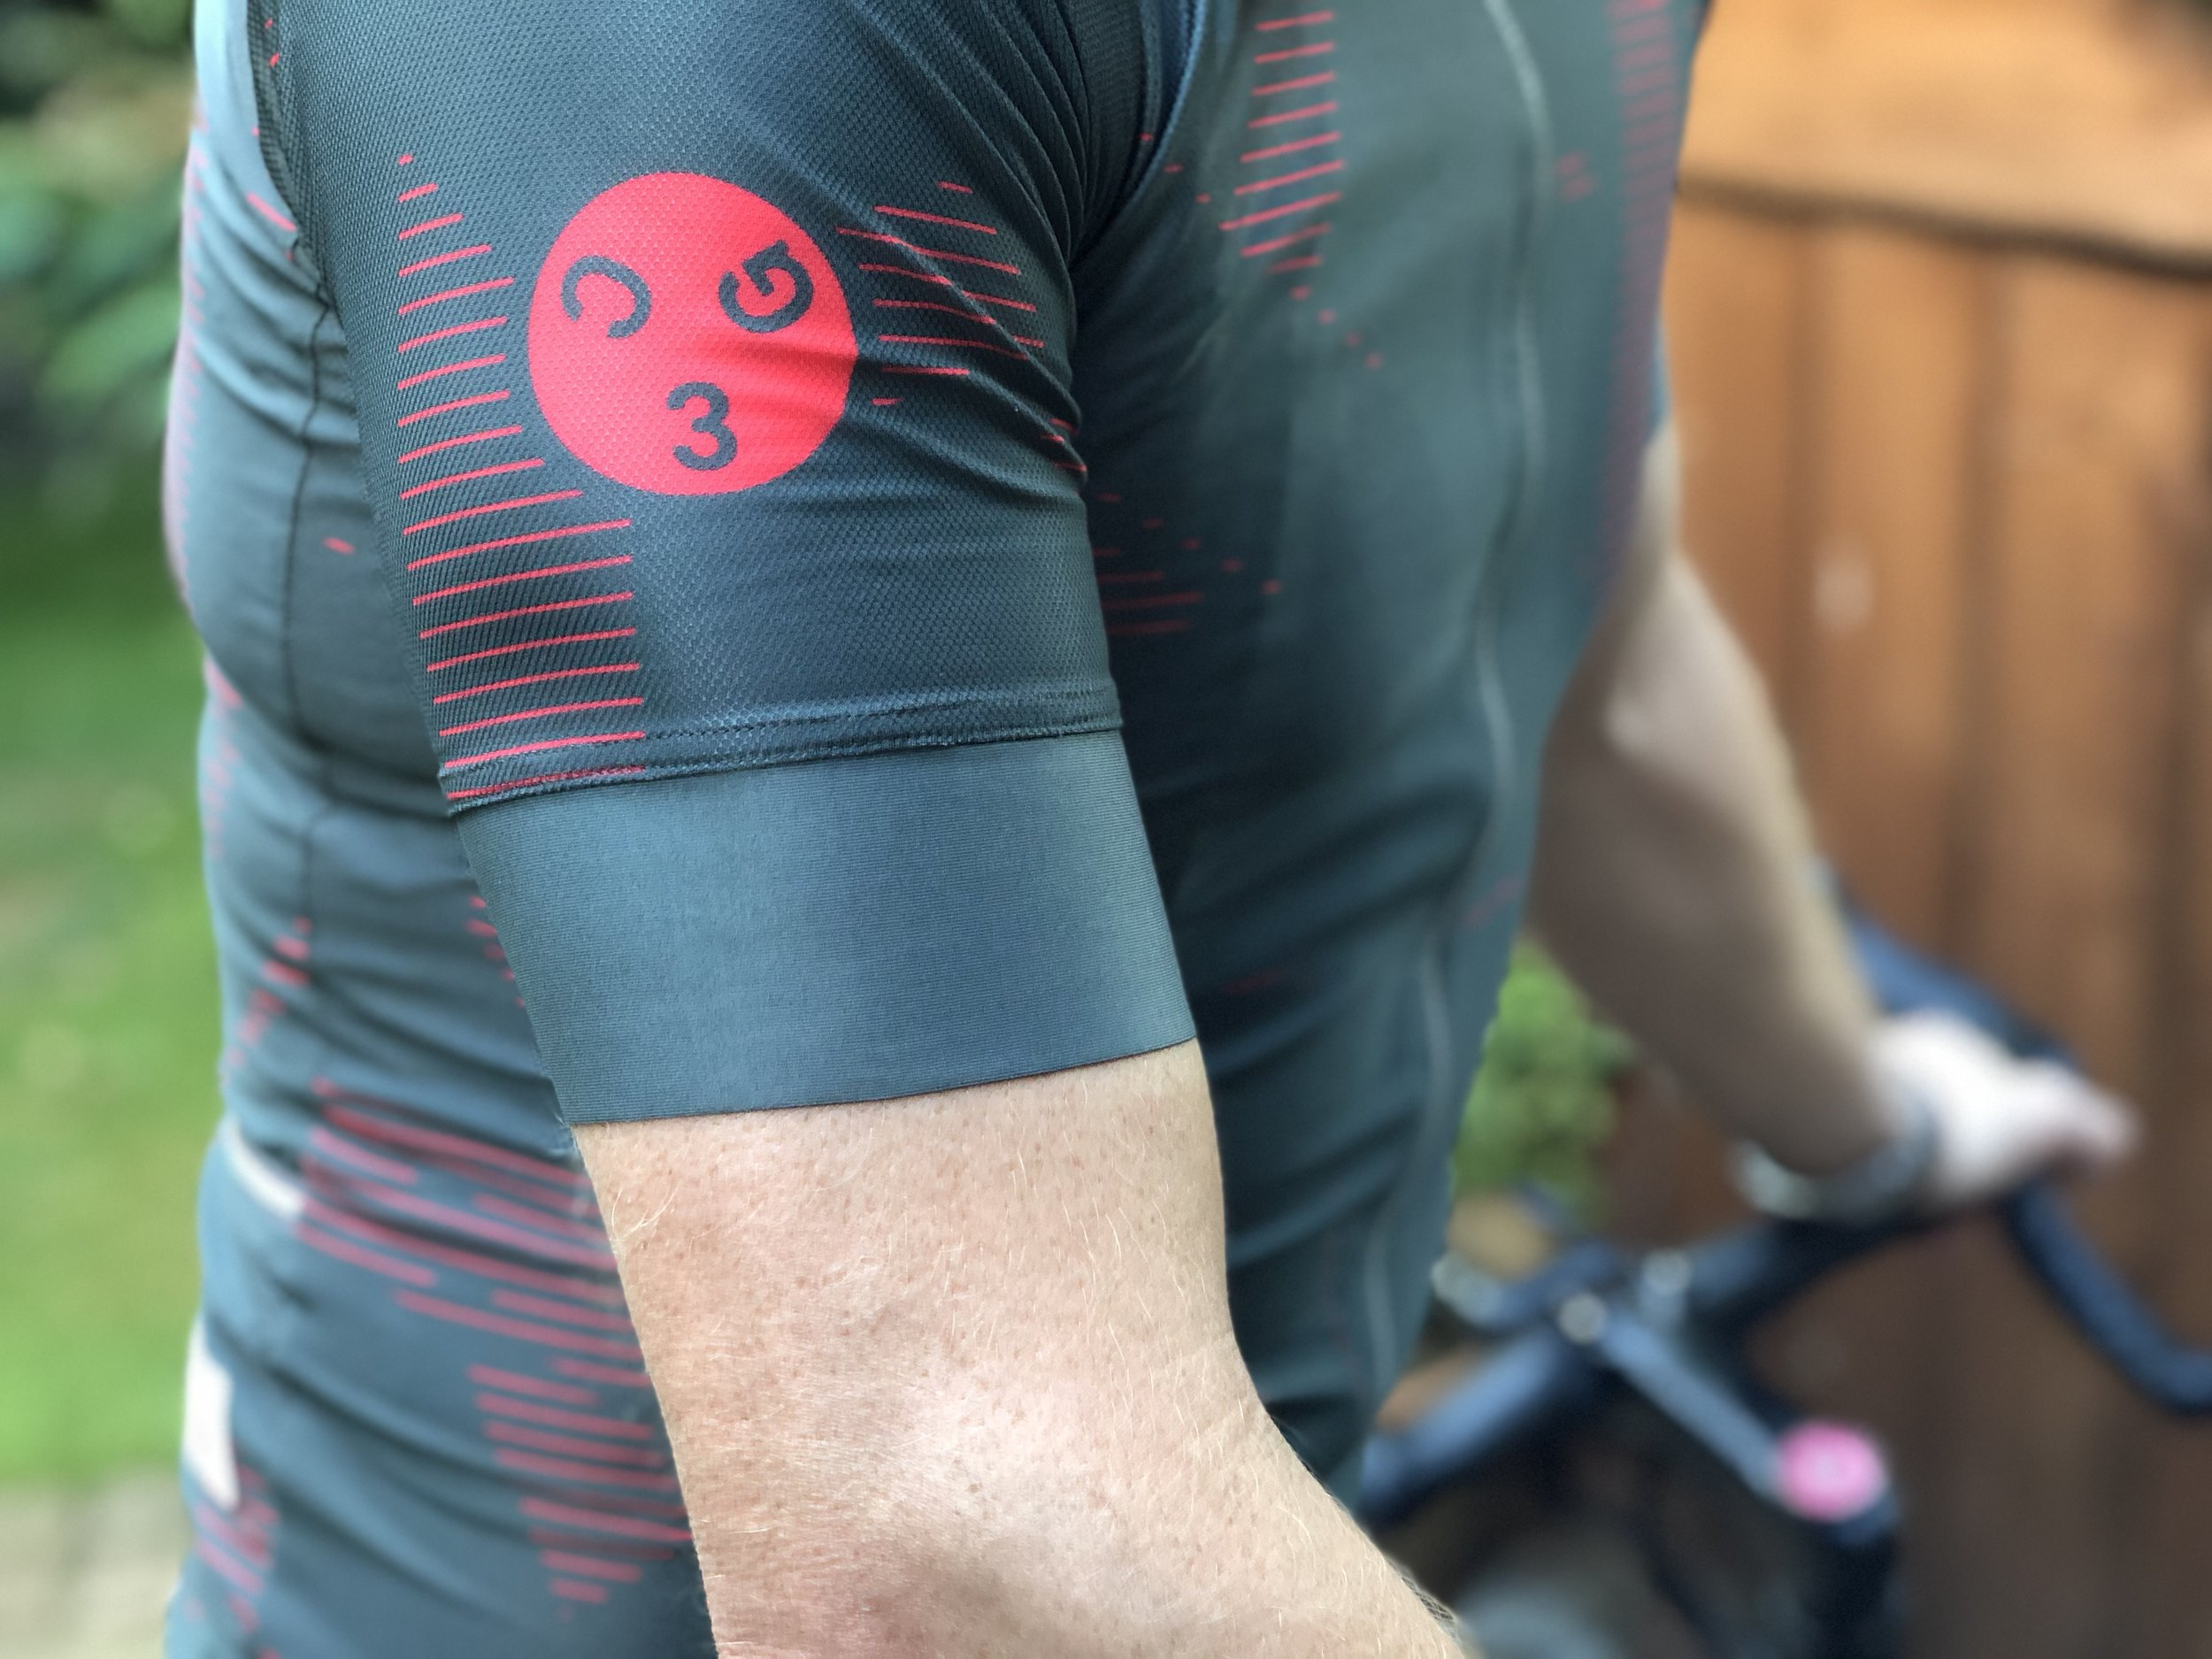 The Girona jersey is manufactured from the same fabric Castelli used in the Maglia Rossa